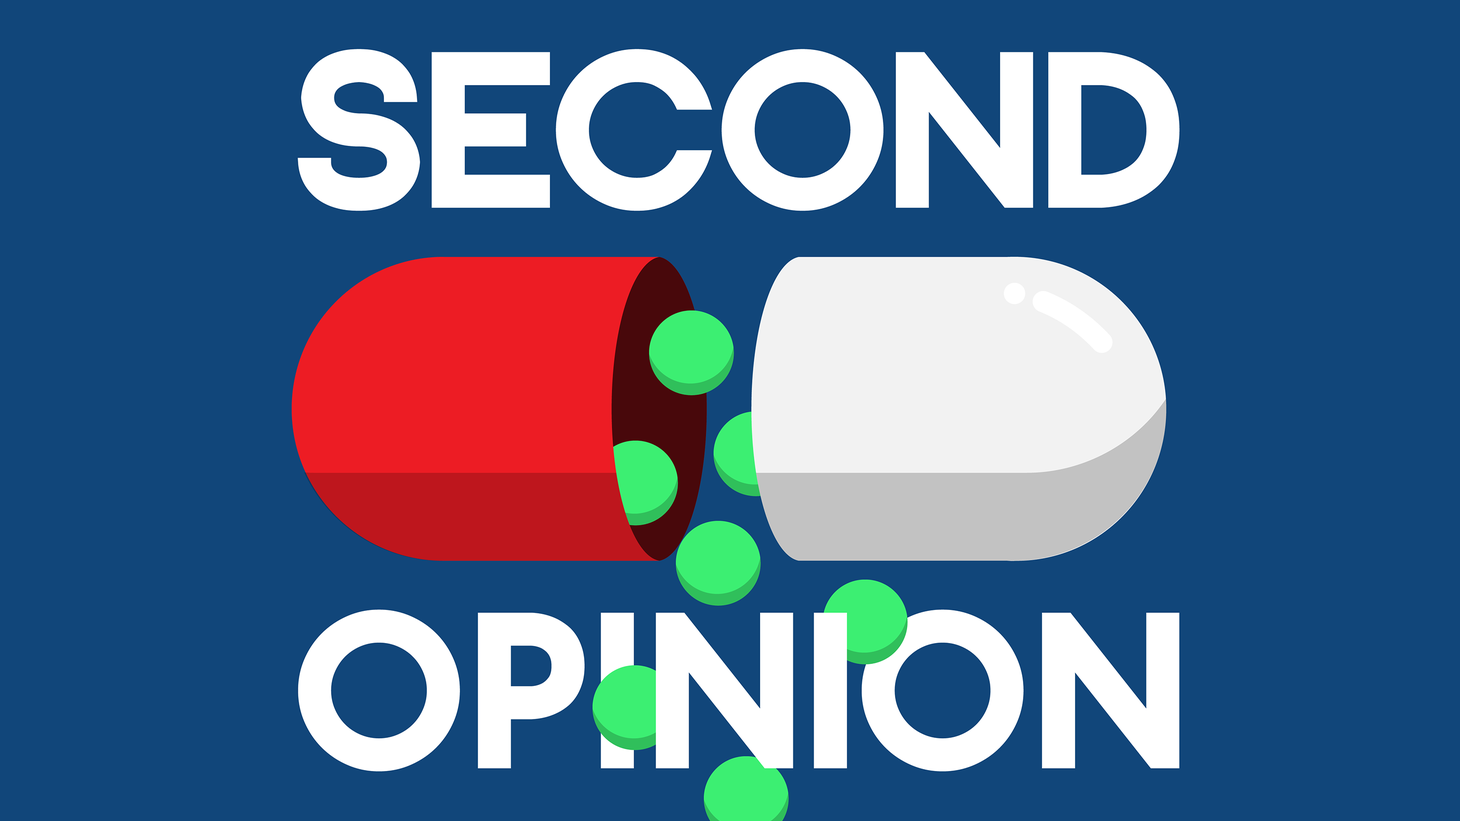 Does starting a young woman on birth control pills lead to earlier onset of sexual activity?